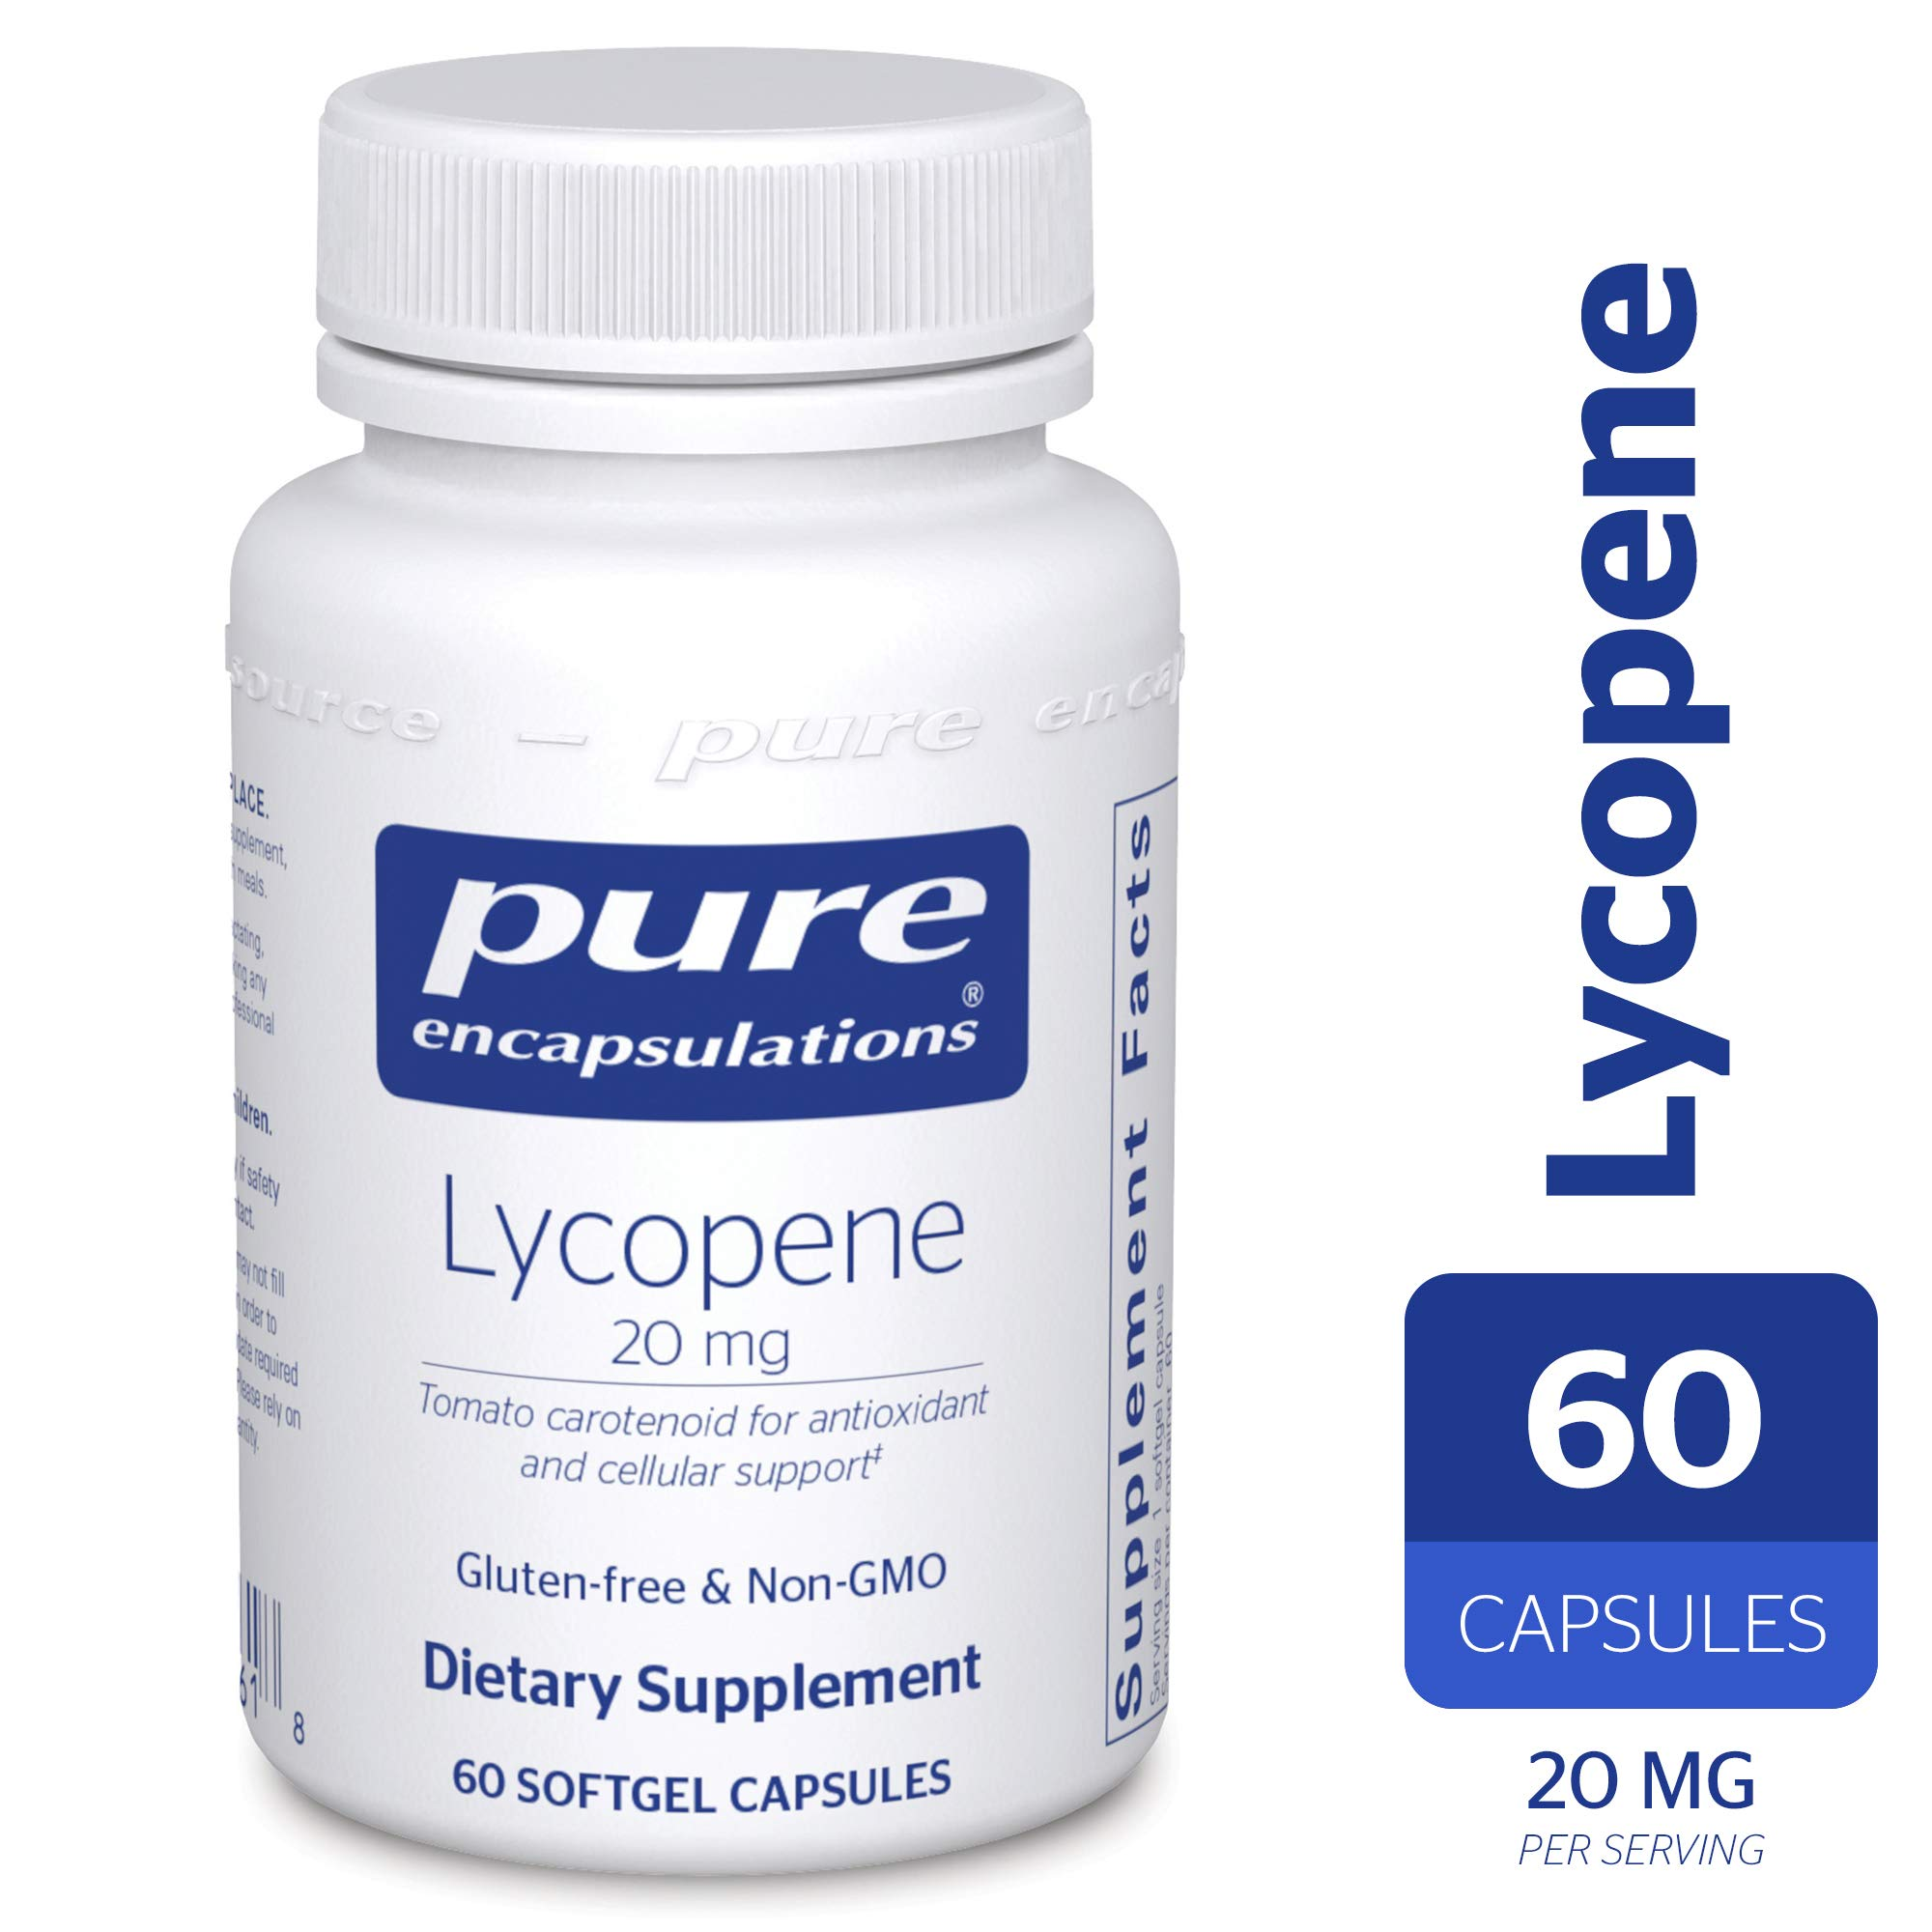 Pure Encapsulations - Lycopene 20 mg - Dietary Supplement for Prostate, Cellular and Macular Support* - 60 Softgel Capsules